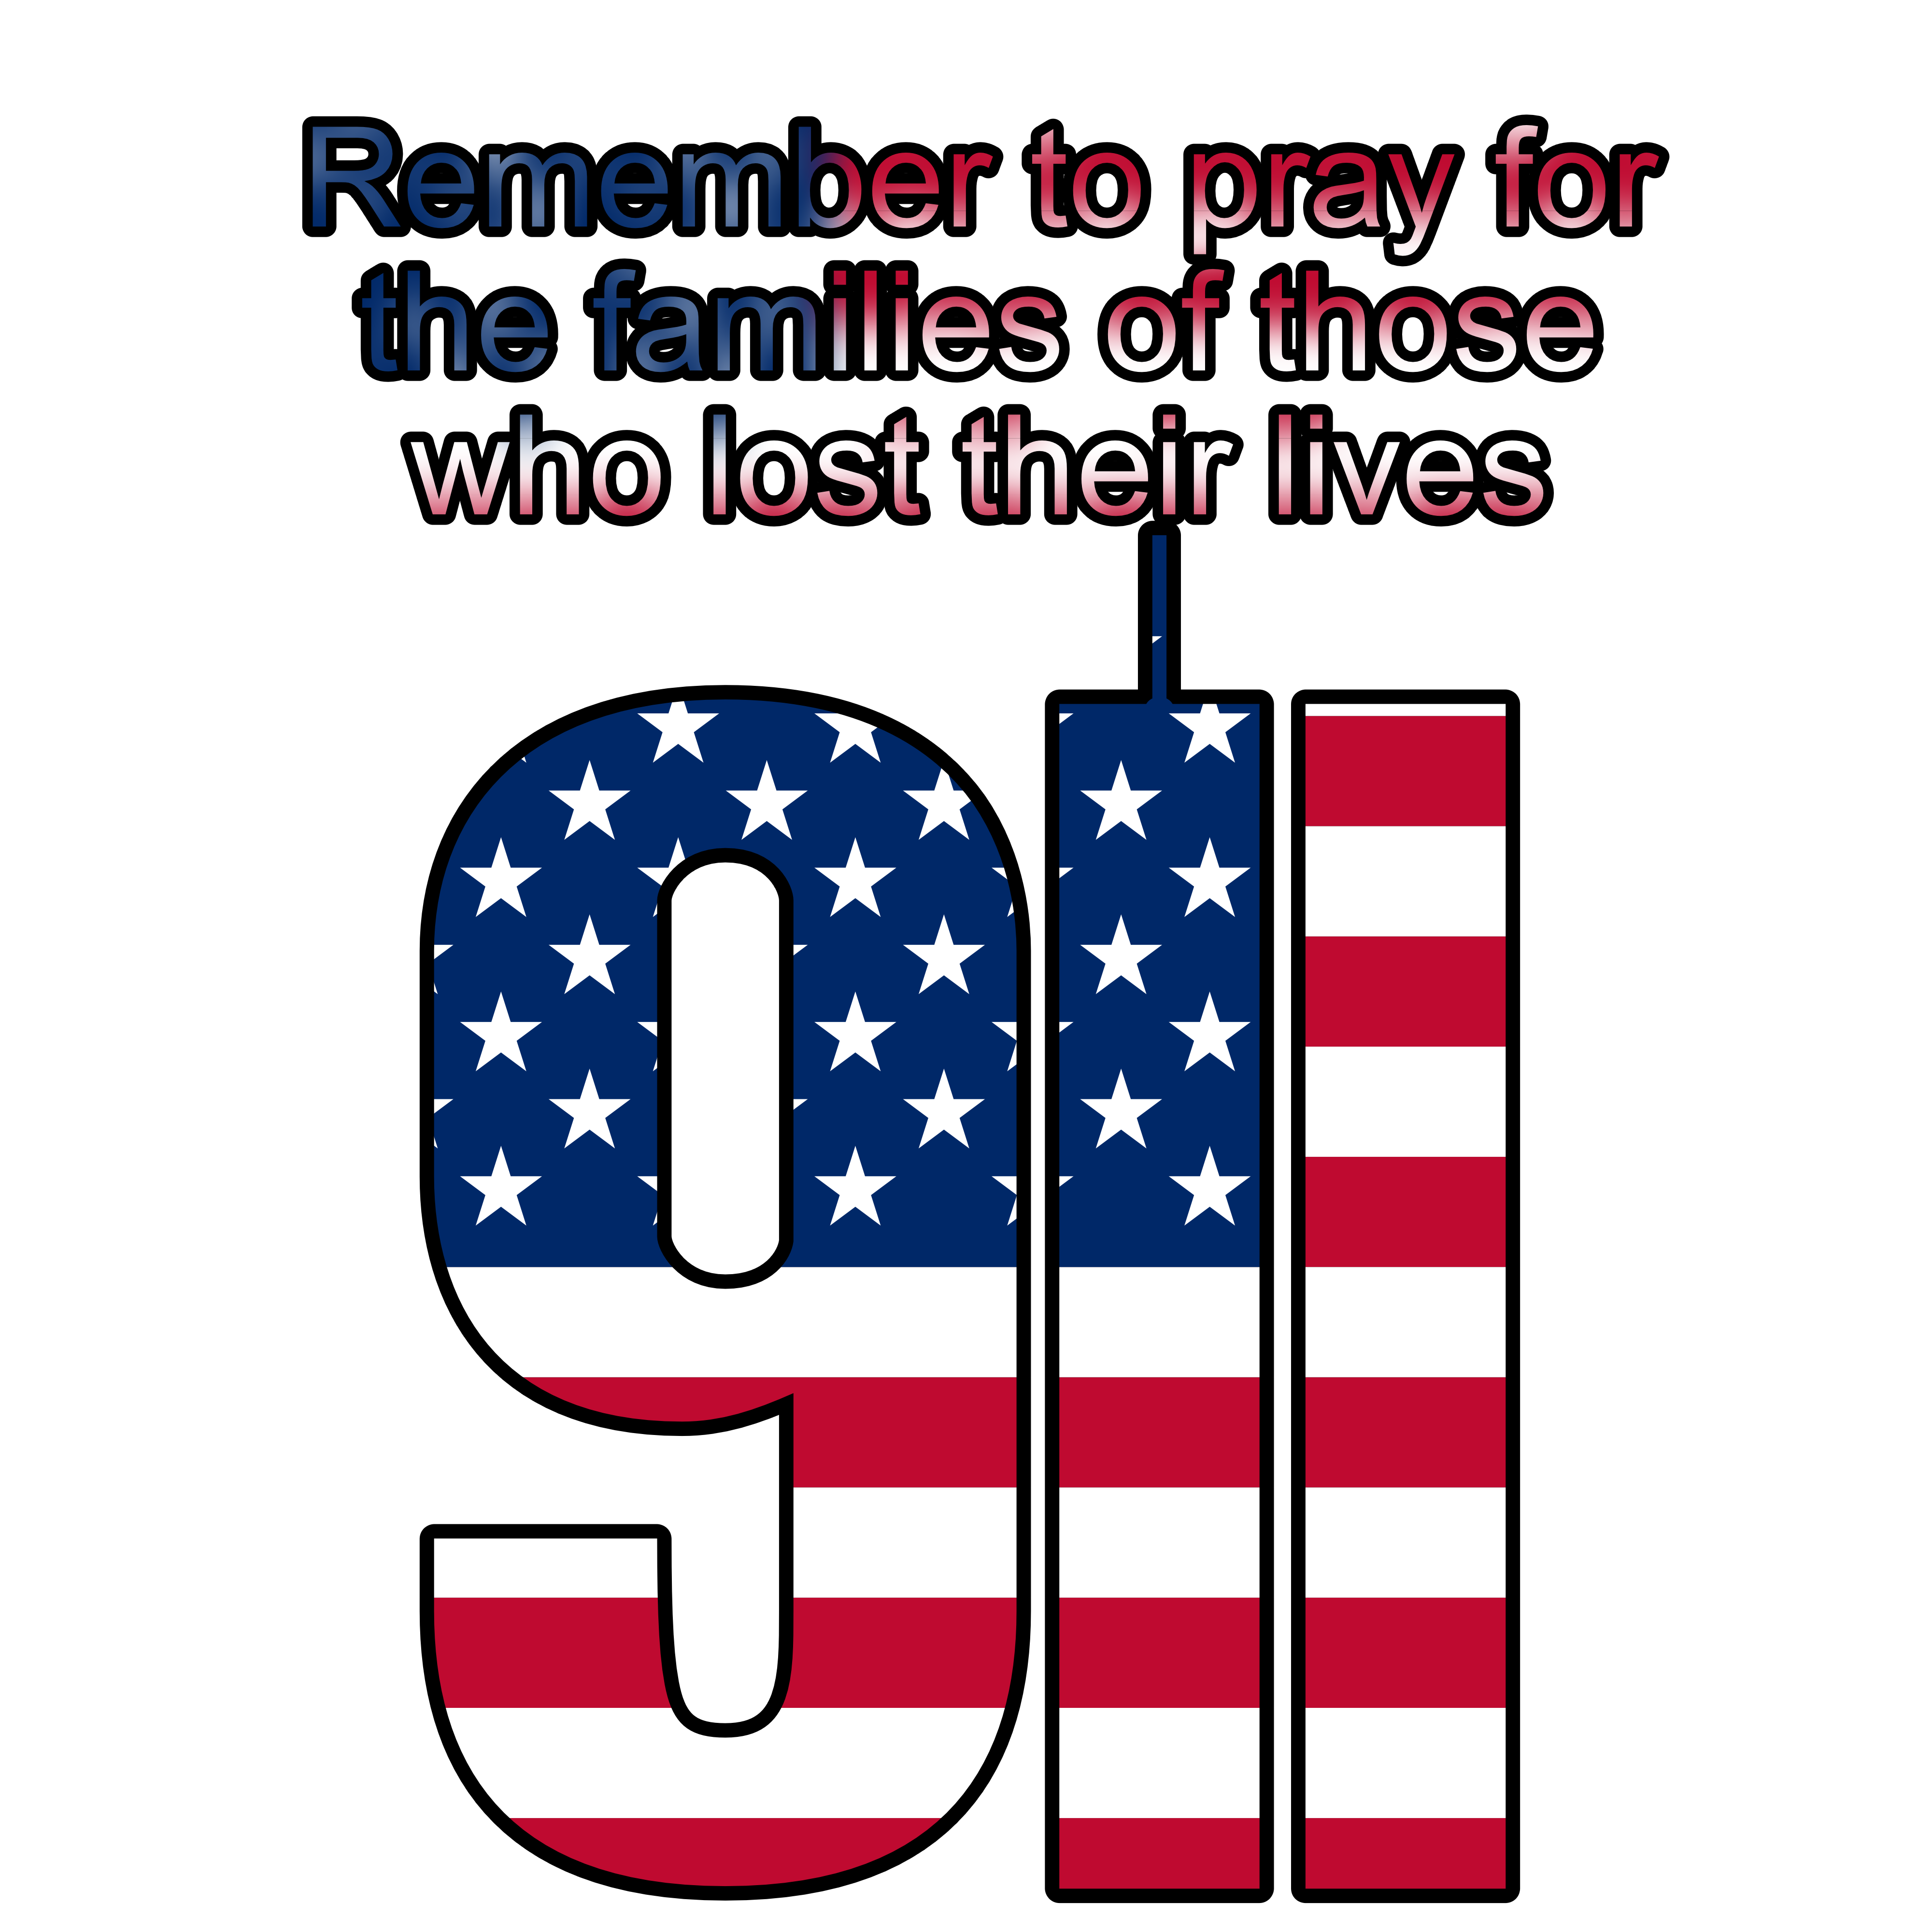 9/11 prayer for the families who lost love ones